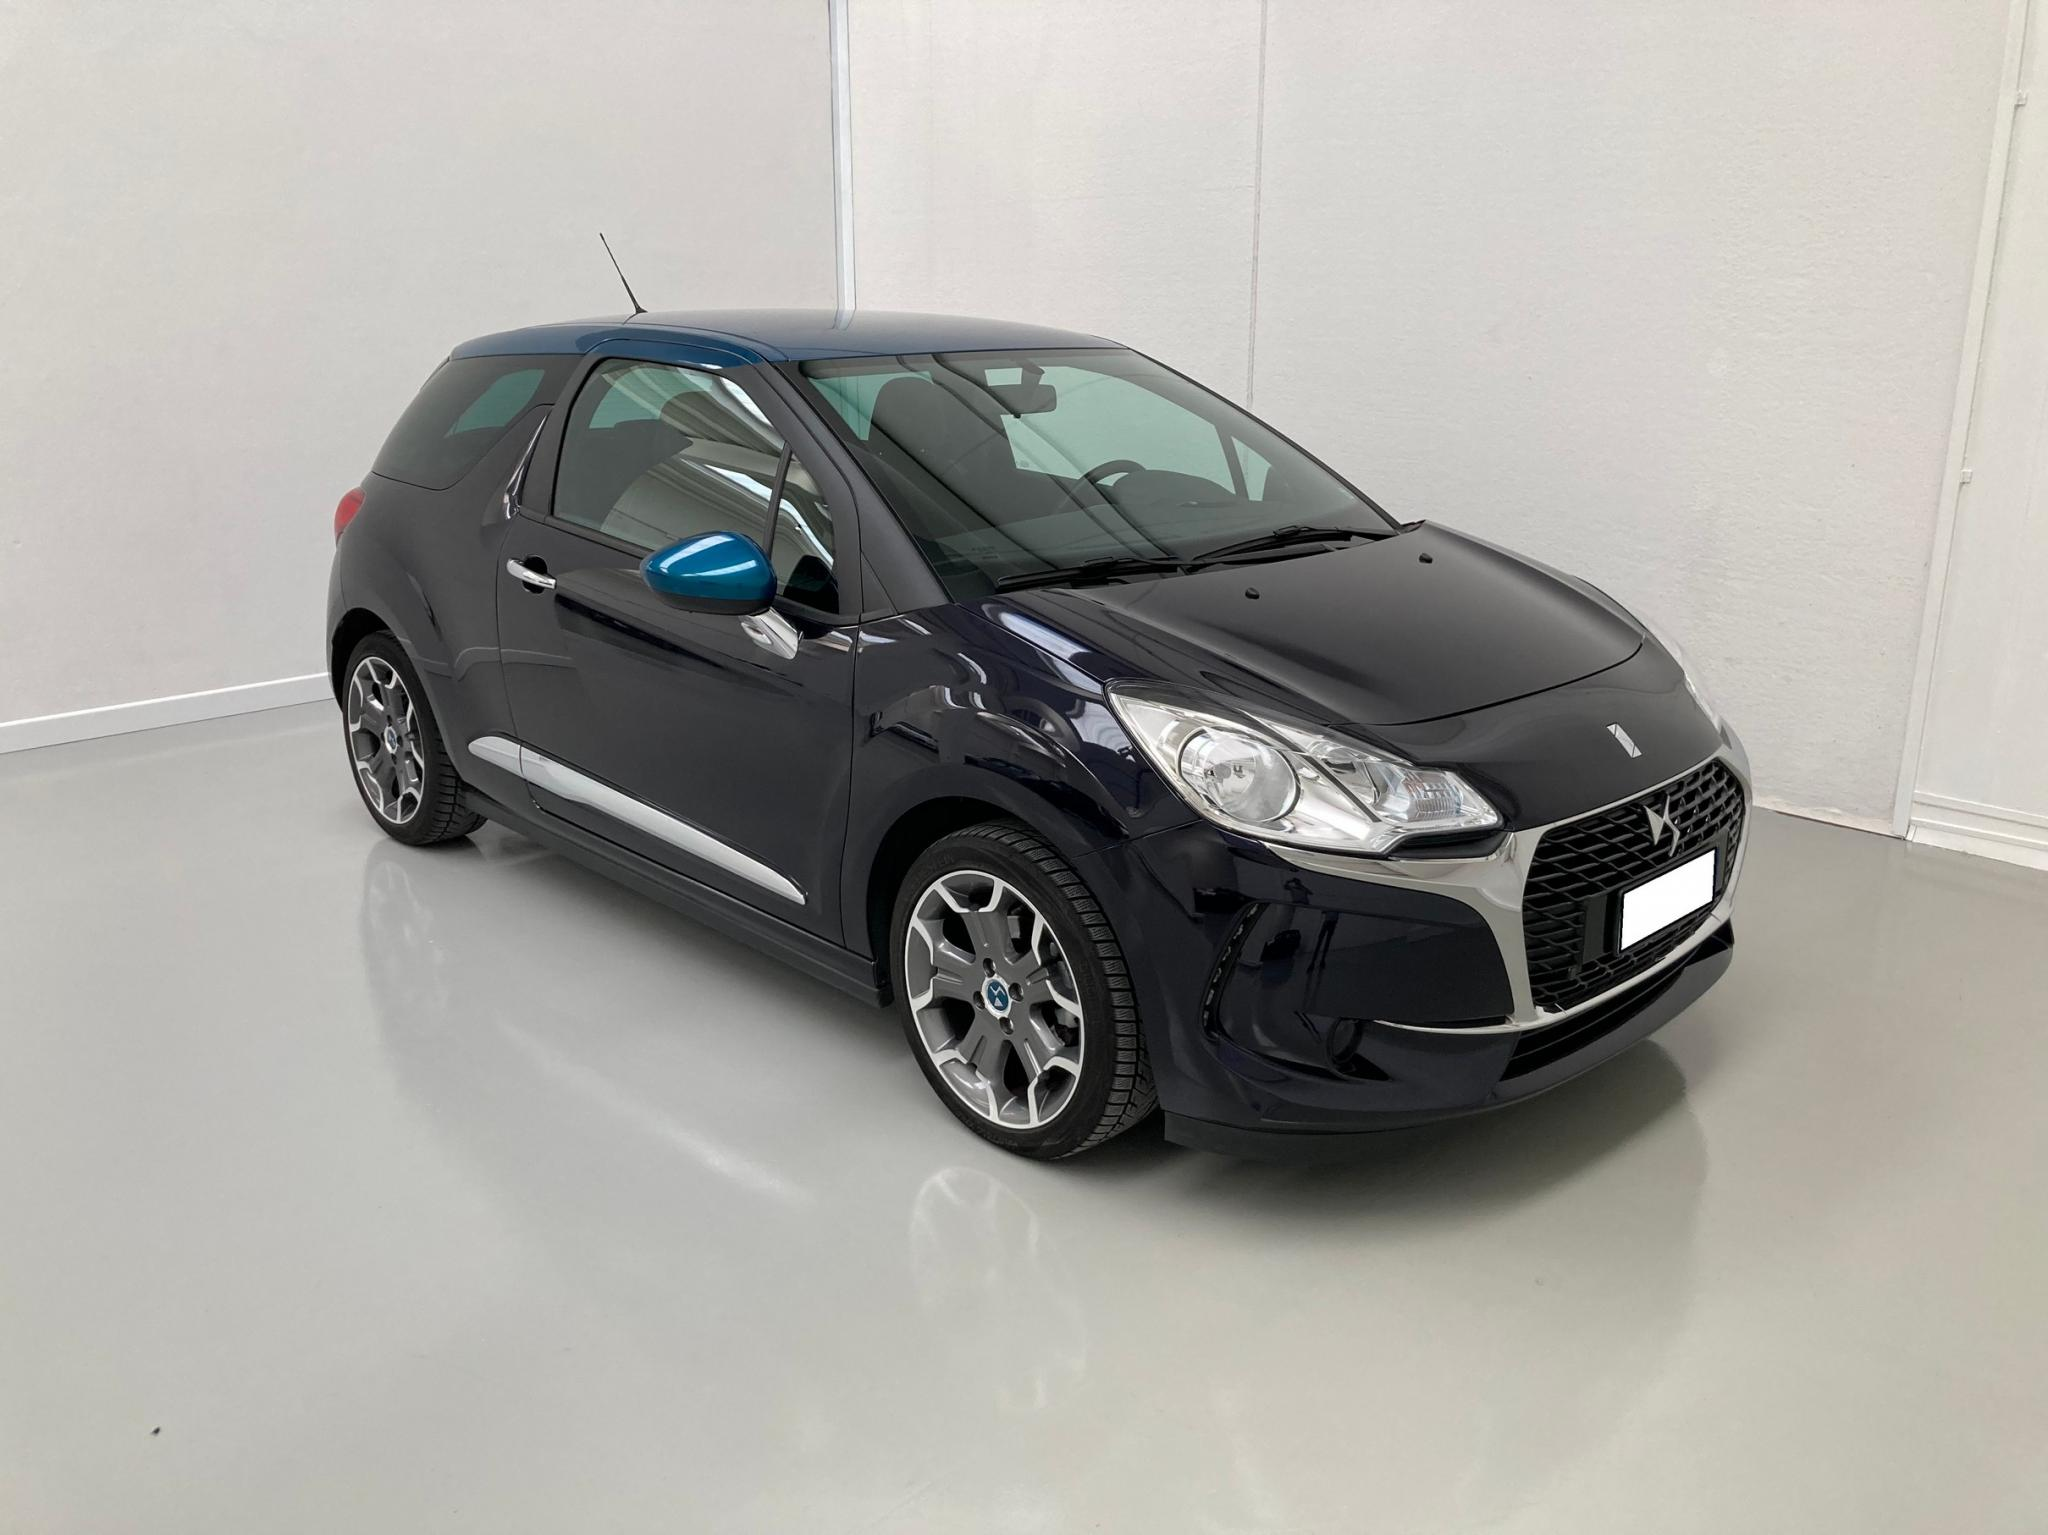 Citroen DS3 1.2 82CV #UNICO PROPRIETARIO #NEOPATENTATI